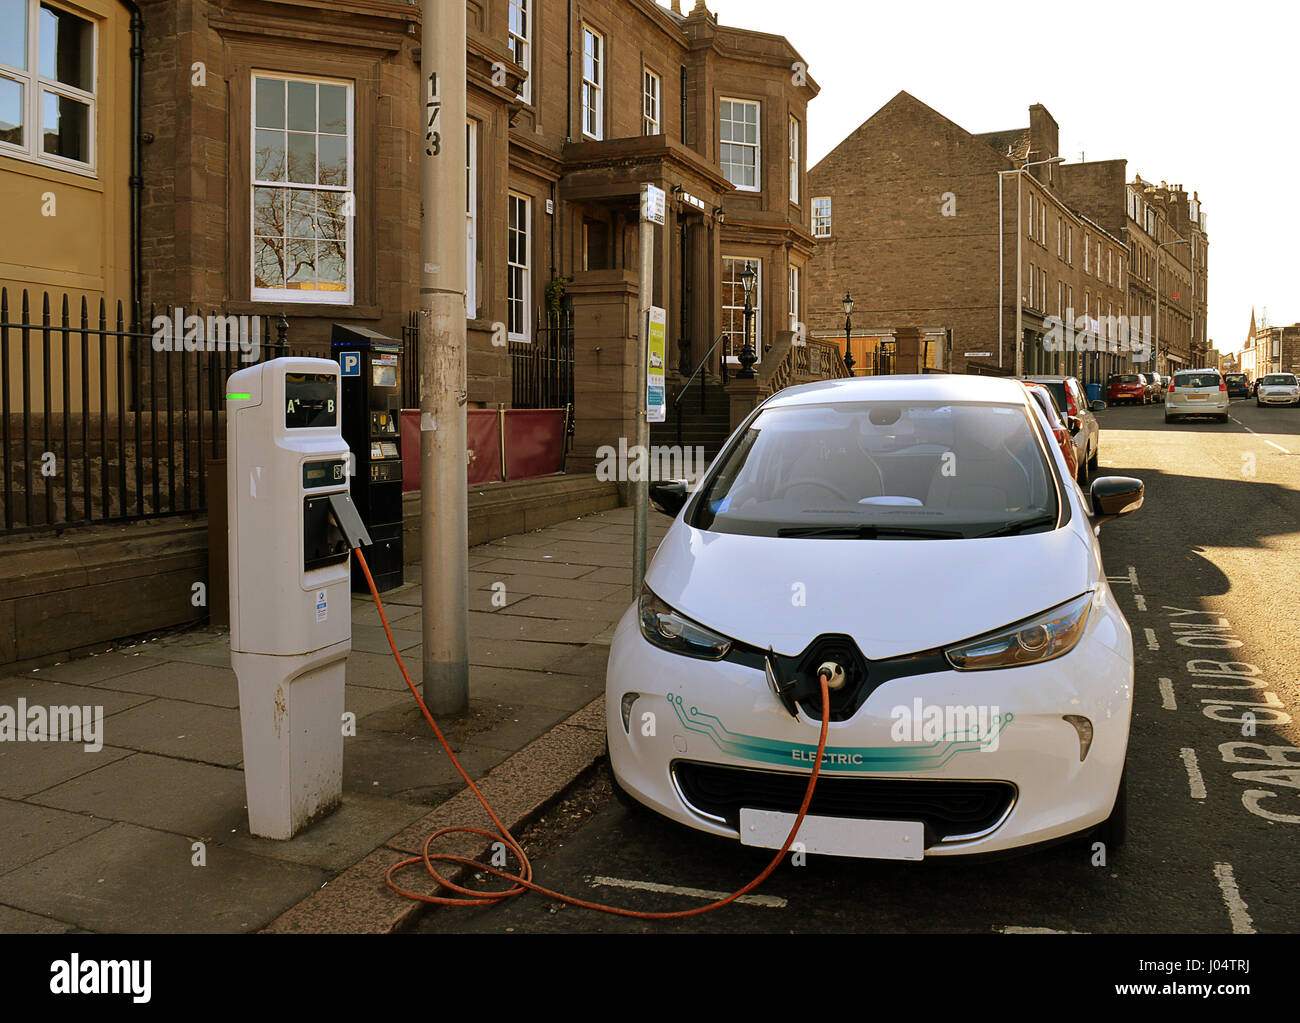 An electric car, from the city's Car Club scheme, being charged on Perth Road, Dundee - Stock Image